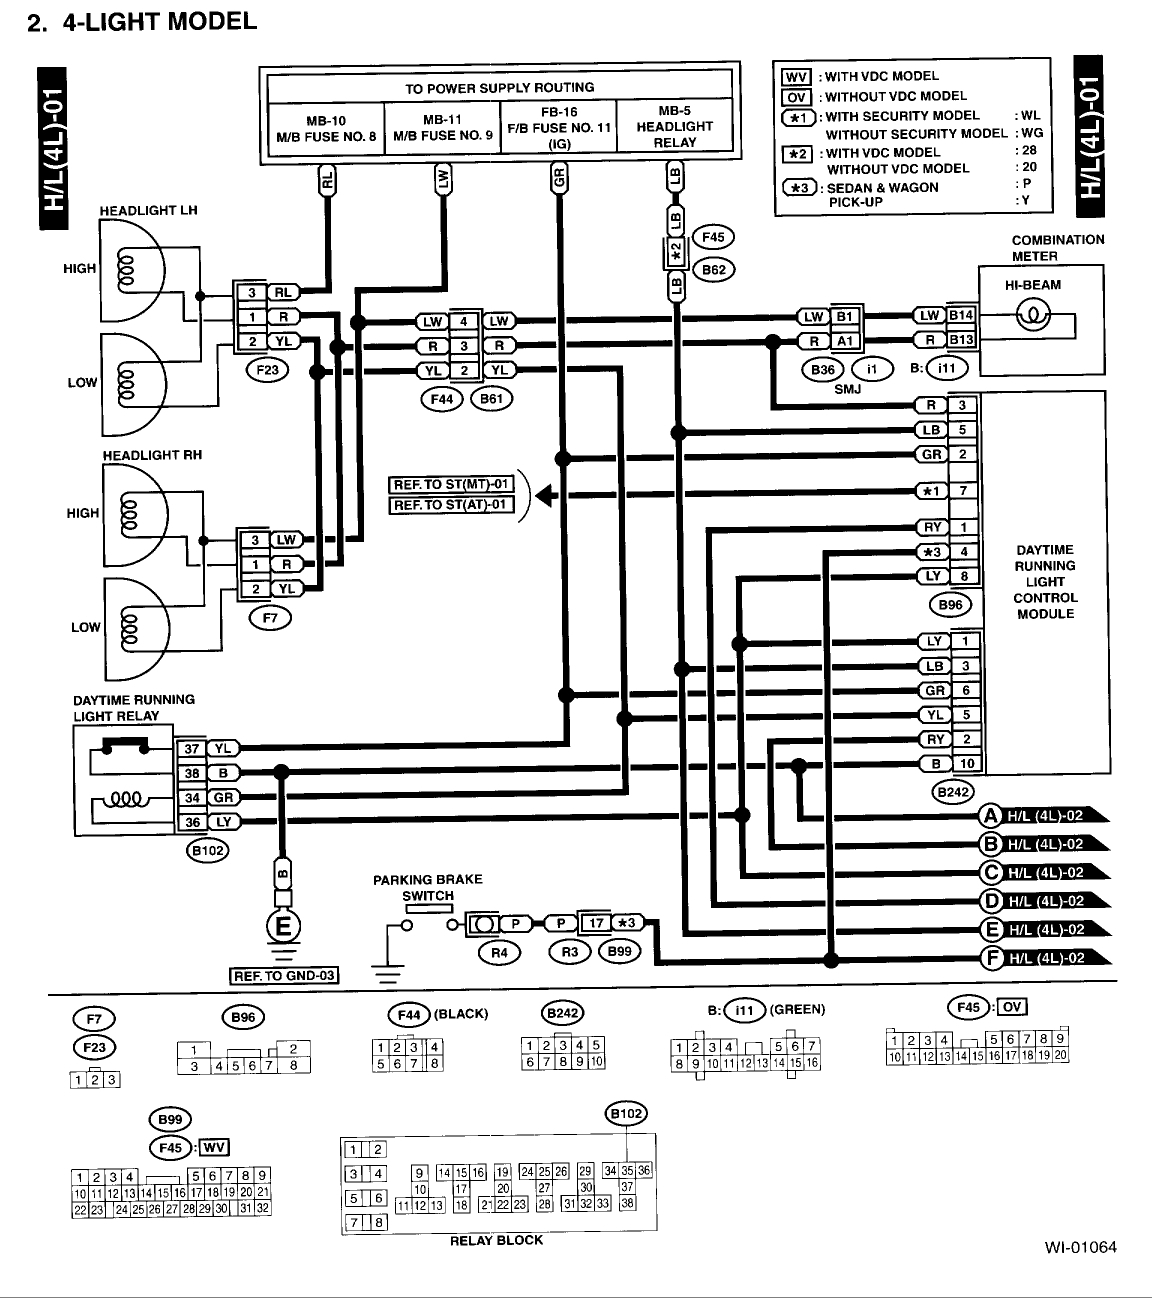 [SCHEMATICS_4PO]  2002 Subaru Wire Harness Diagram | Wiring Diagram | 2002 Subaru Impreza Headlight Wiring Diagram |  | Wiring Diagram - AutoScout24